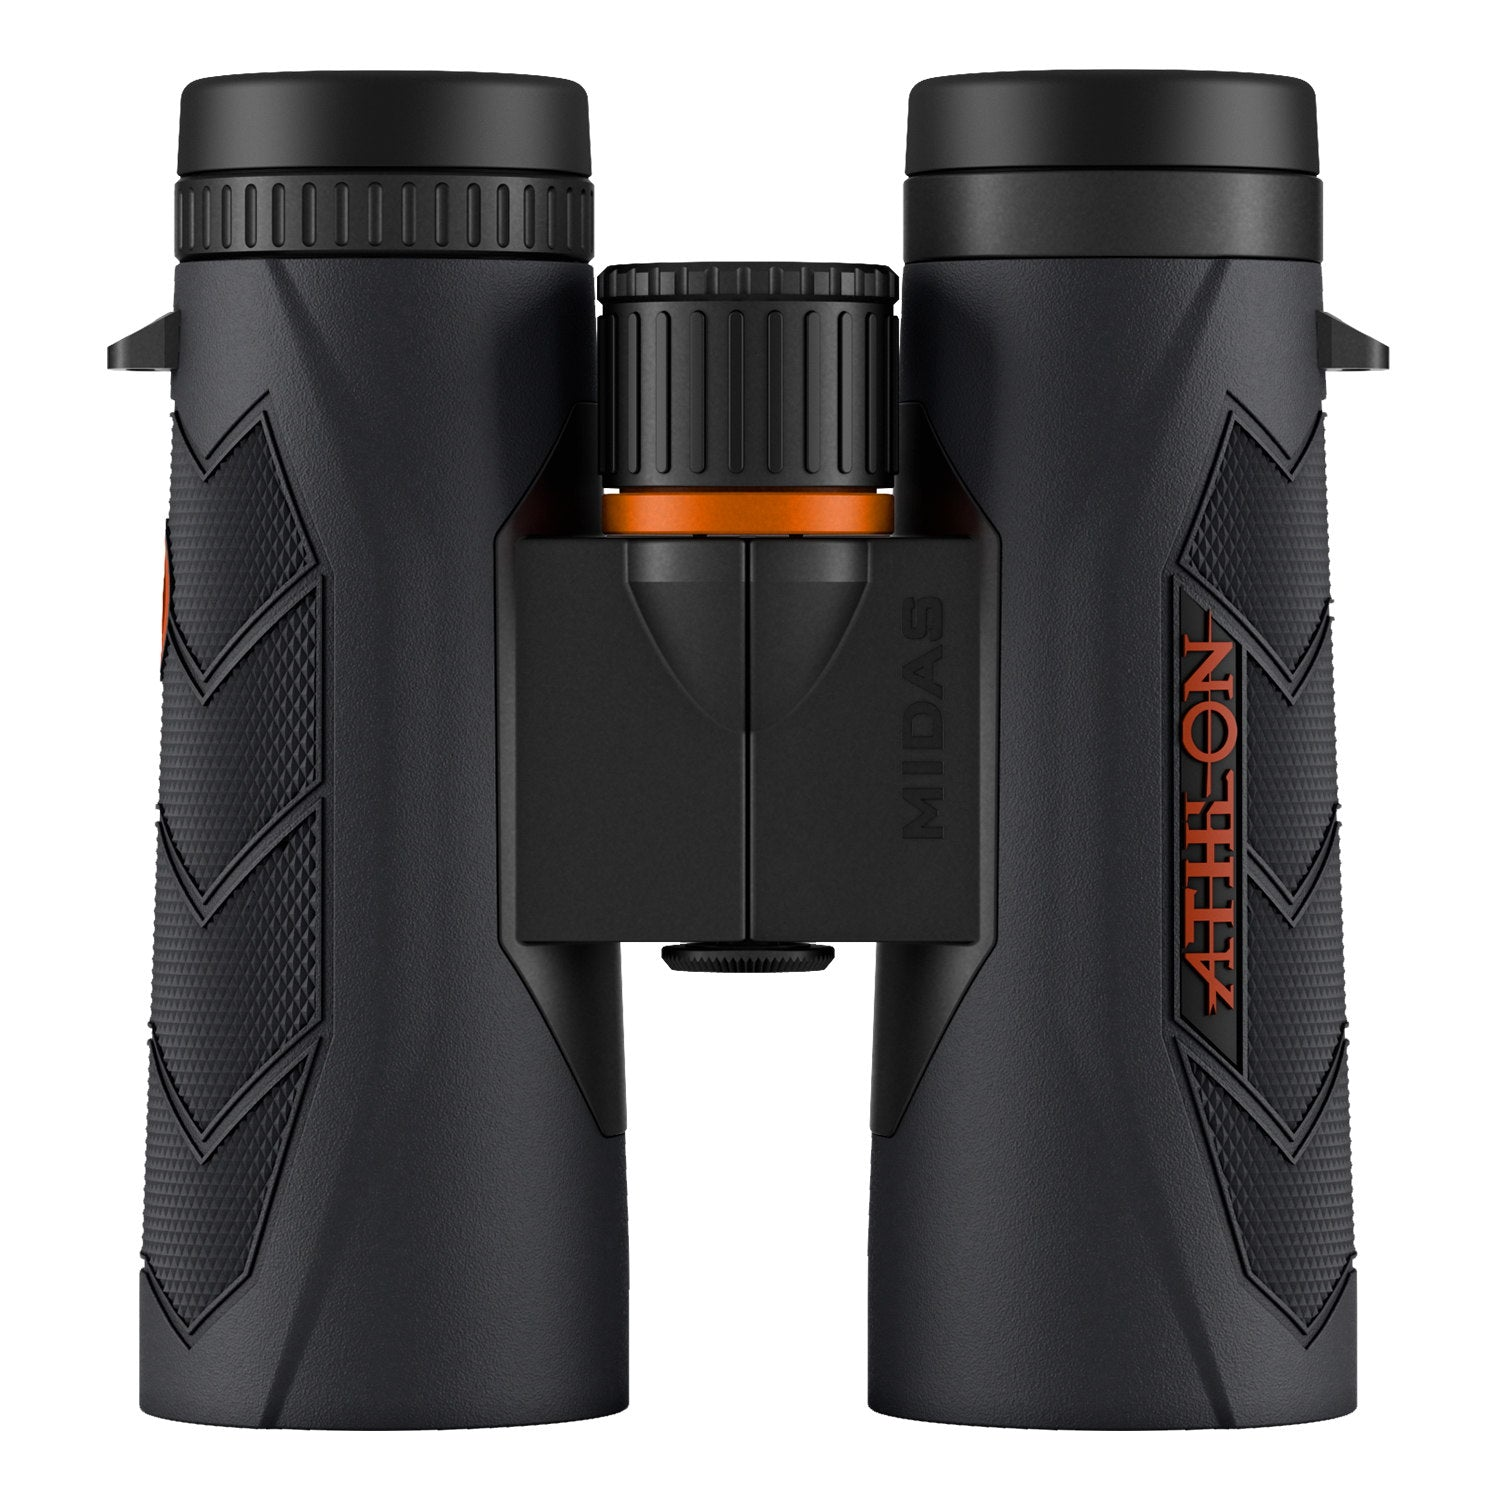 Athlon Optics Midas G2 8x42mm UHD Binoculars - 113009